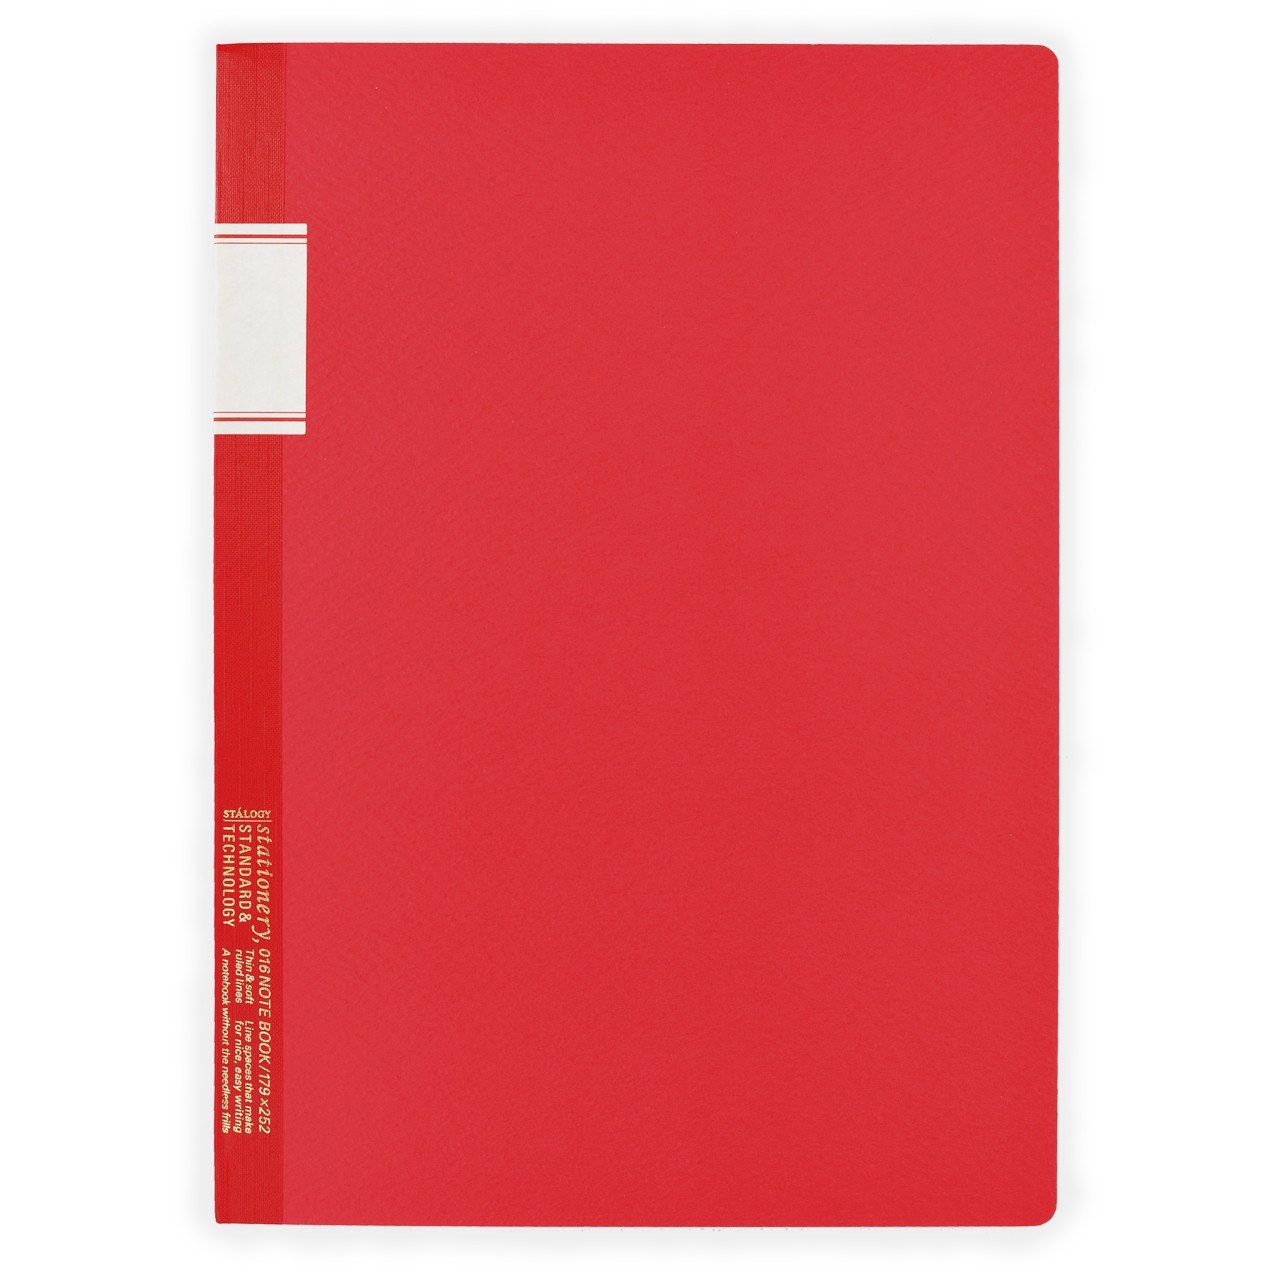 Stalogy S4-L Lined Notebooks: 7 in. x 10